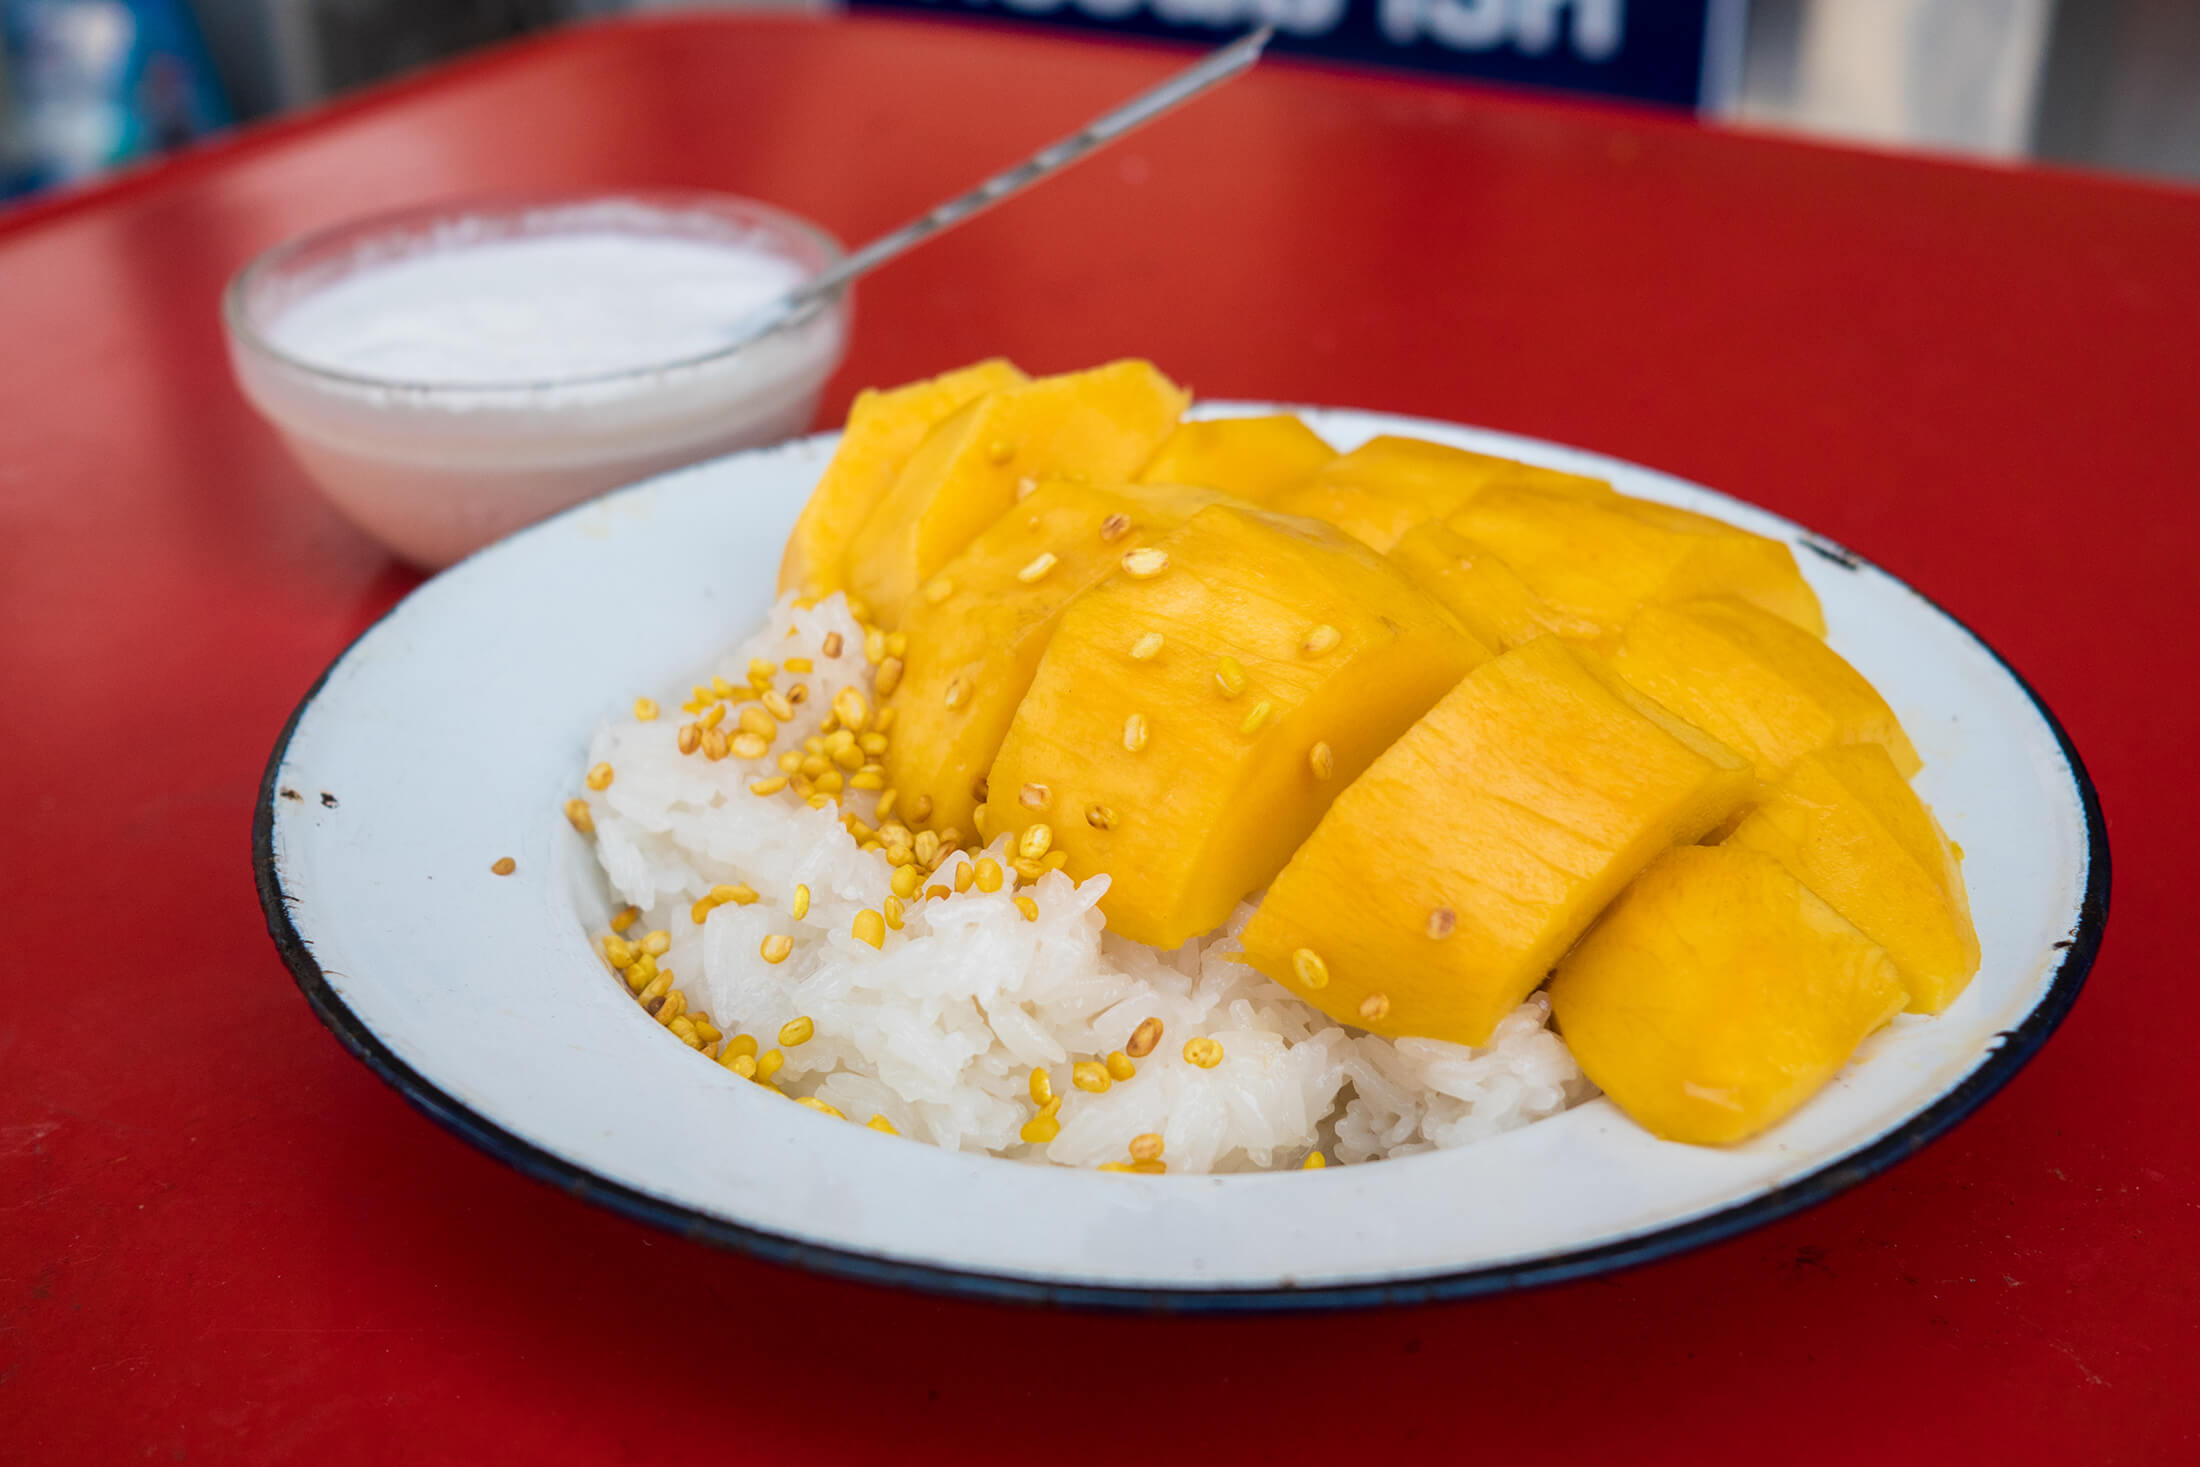 Thai mango sticky rice recipe authentic thai street food style forumfinder Choice Image